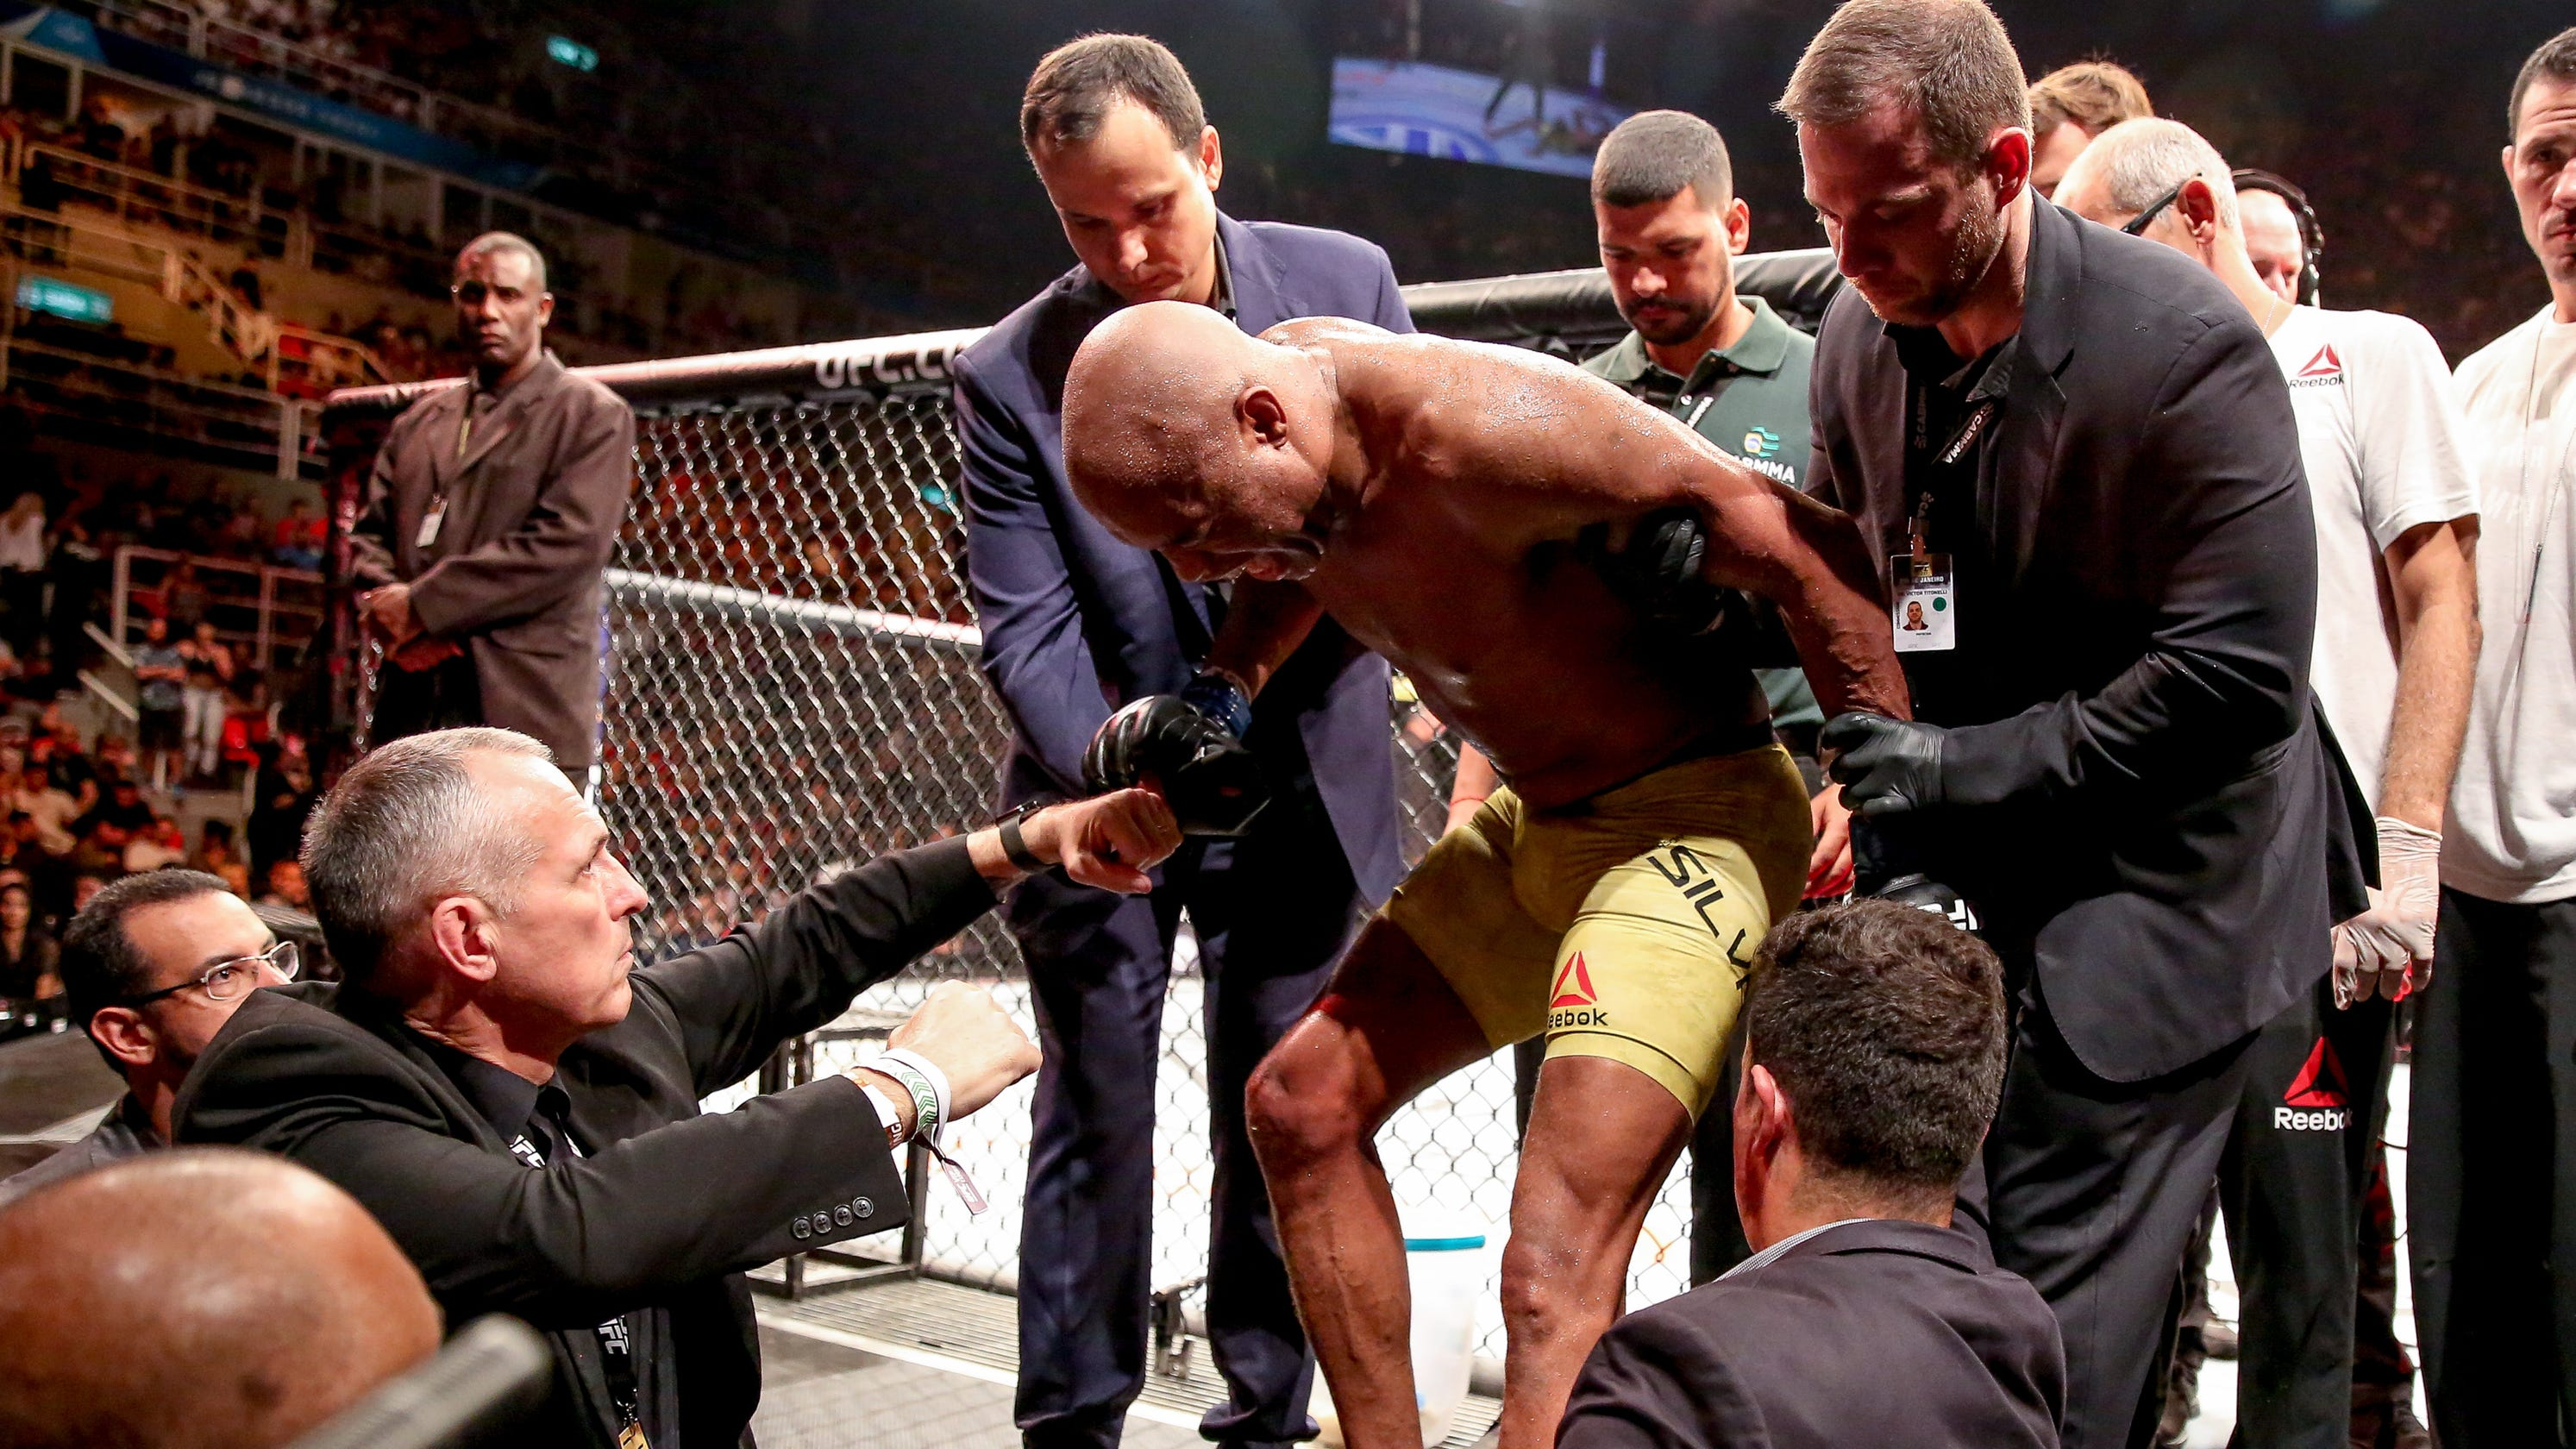 UFC 237: Anderson Silva loses via TKO after suffering